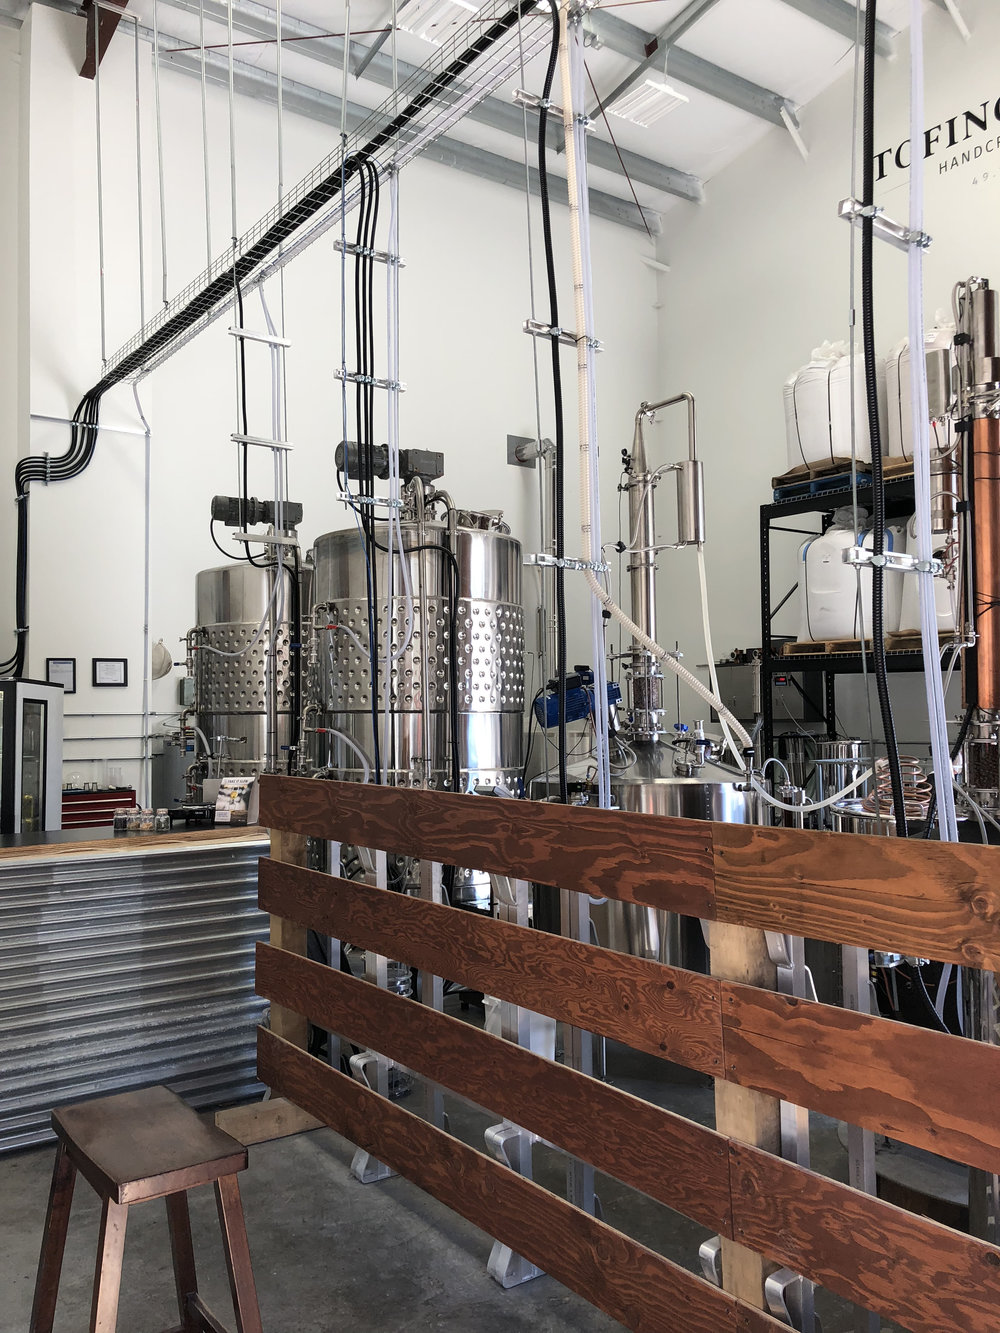 Tofino Distilling Co.